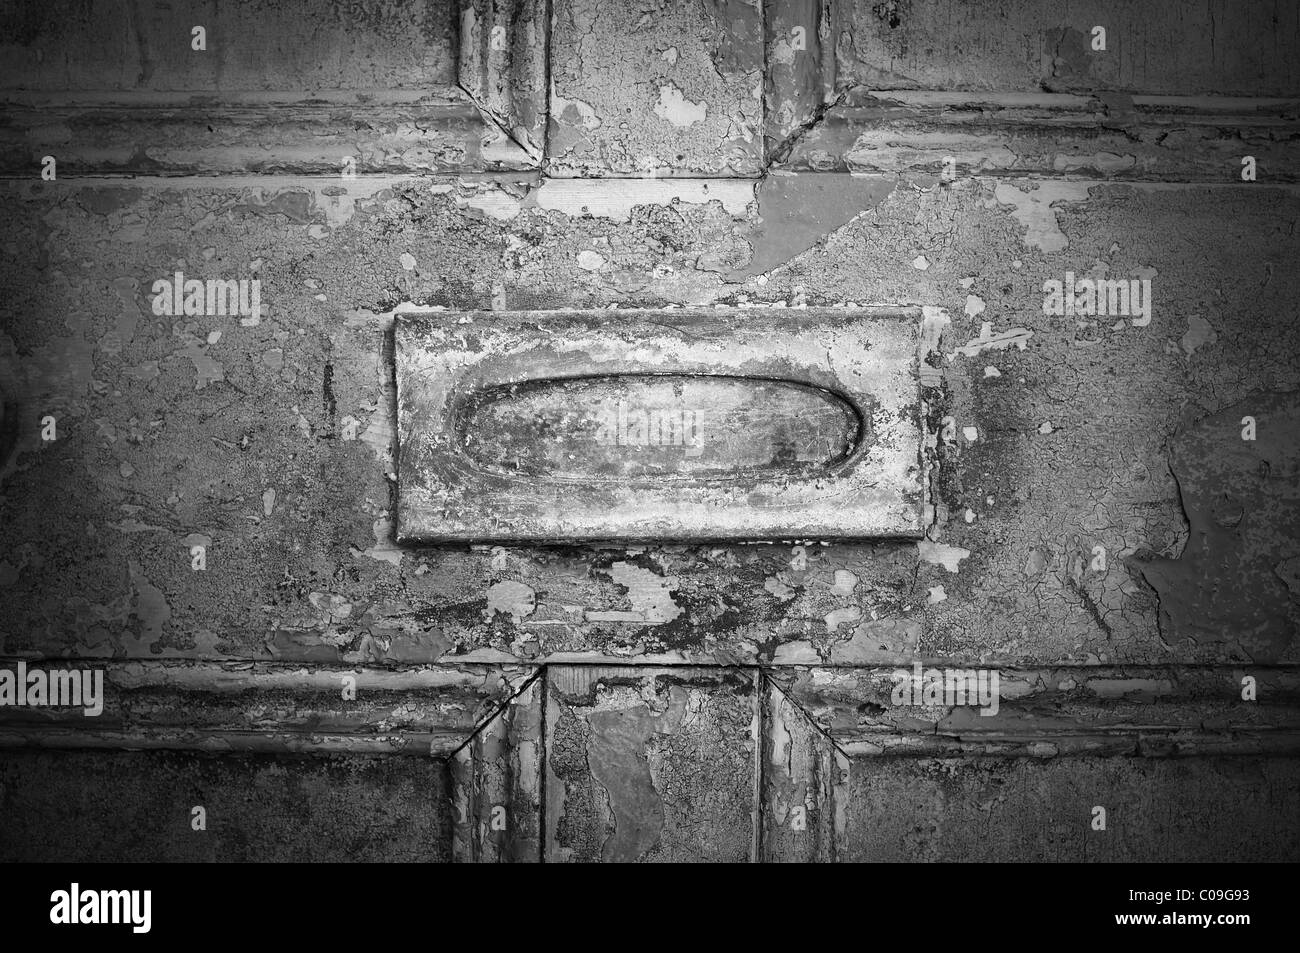 Old Letterbox - John Gollop - Stock Image